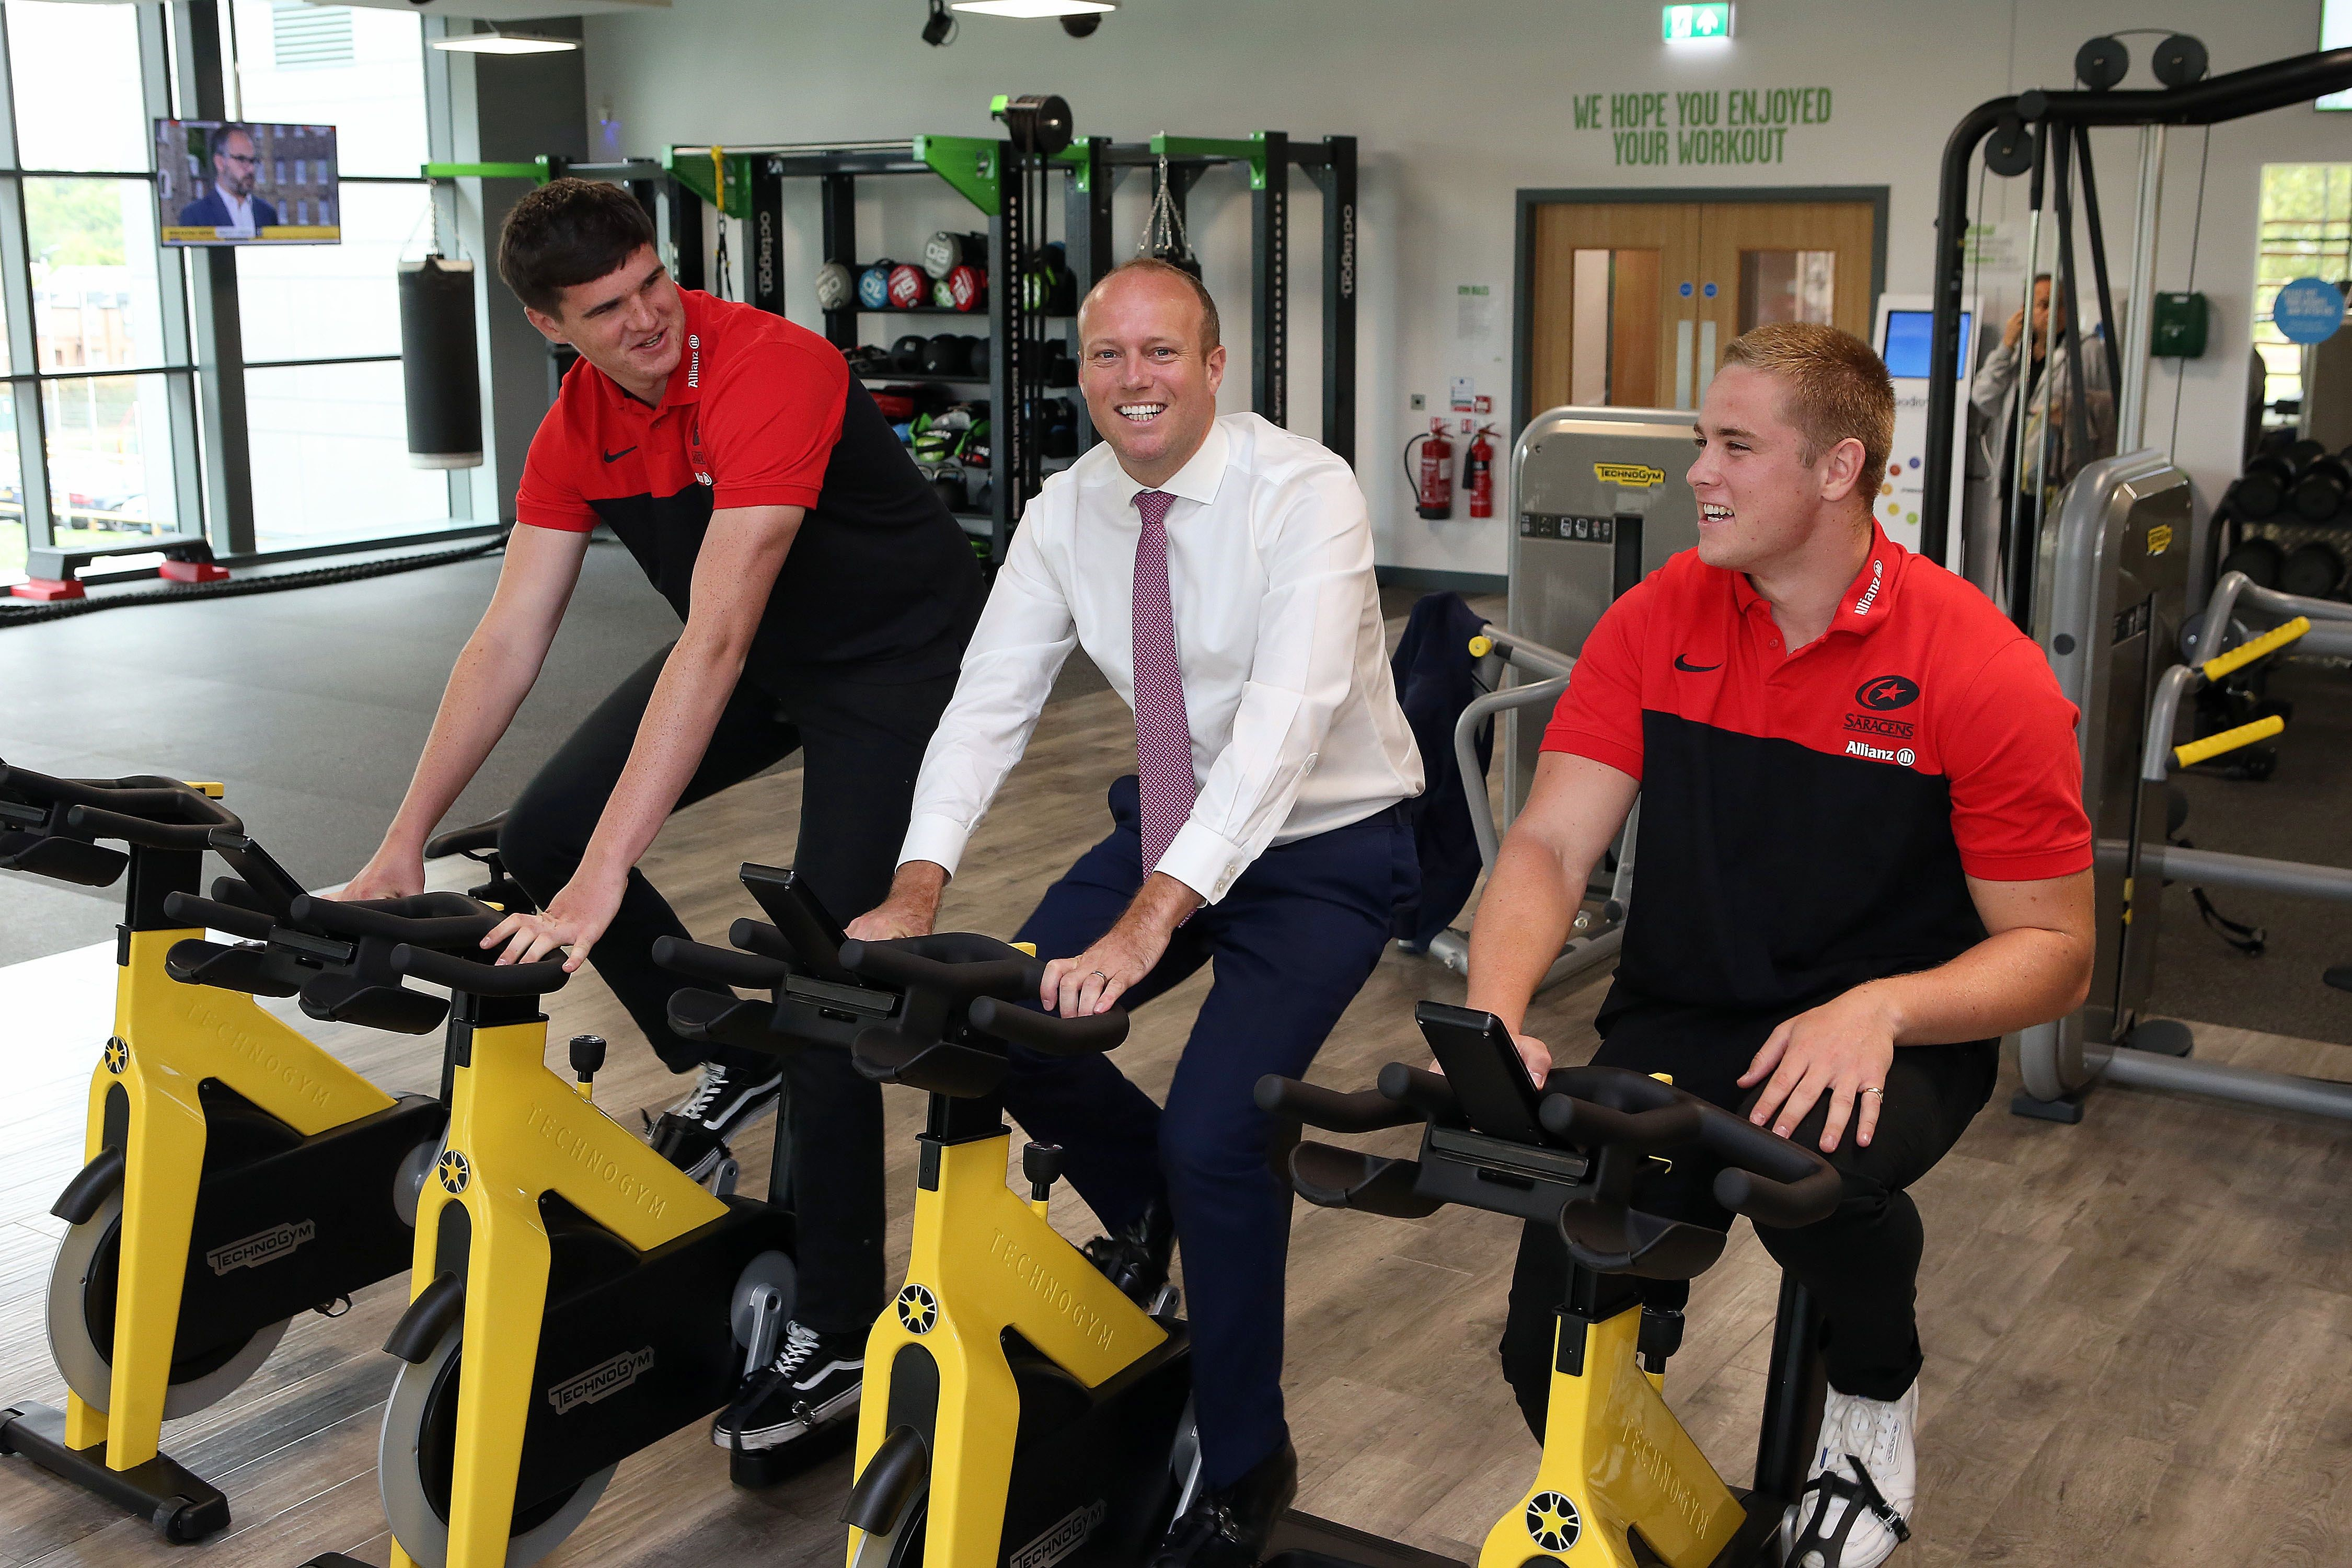 Leader of Barnet Council, Councillor Dan Thomas, with Saracens RFC players Cameron Boon (left) and Tobias Munday on the exercise bikes at New Barnet Leisure Centre.